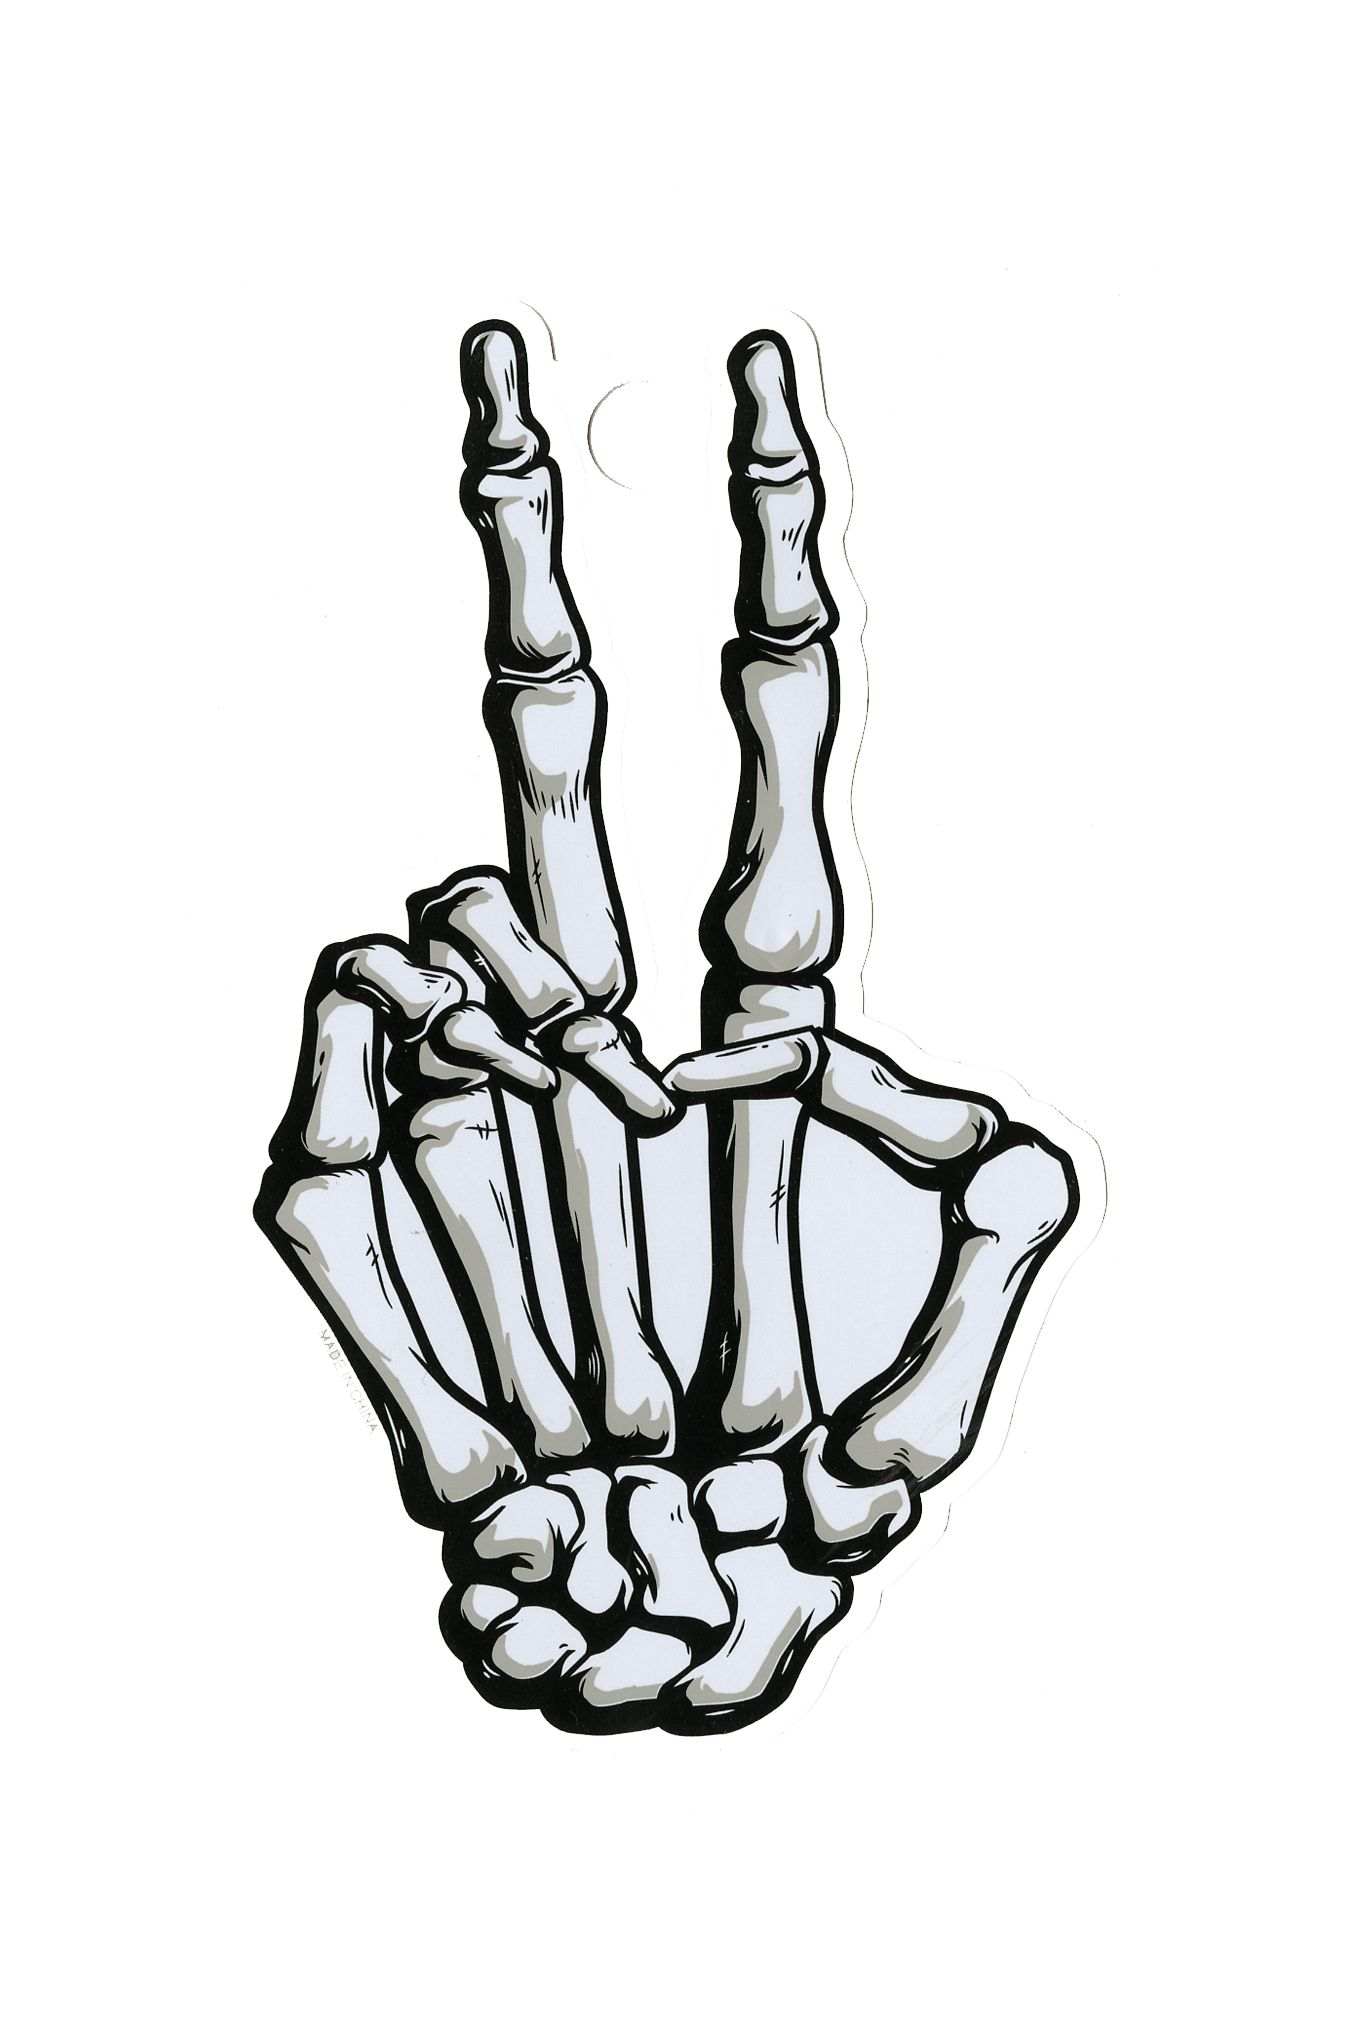 skeleton hand Google Search Skeleton hand tattoo